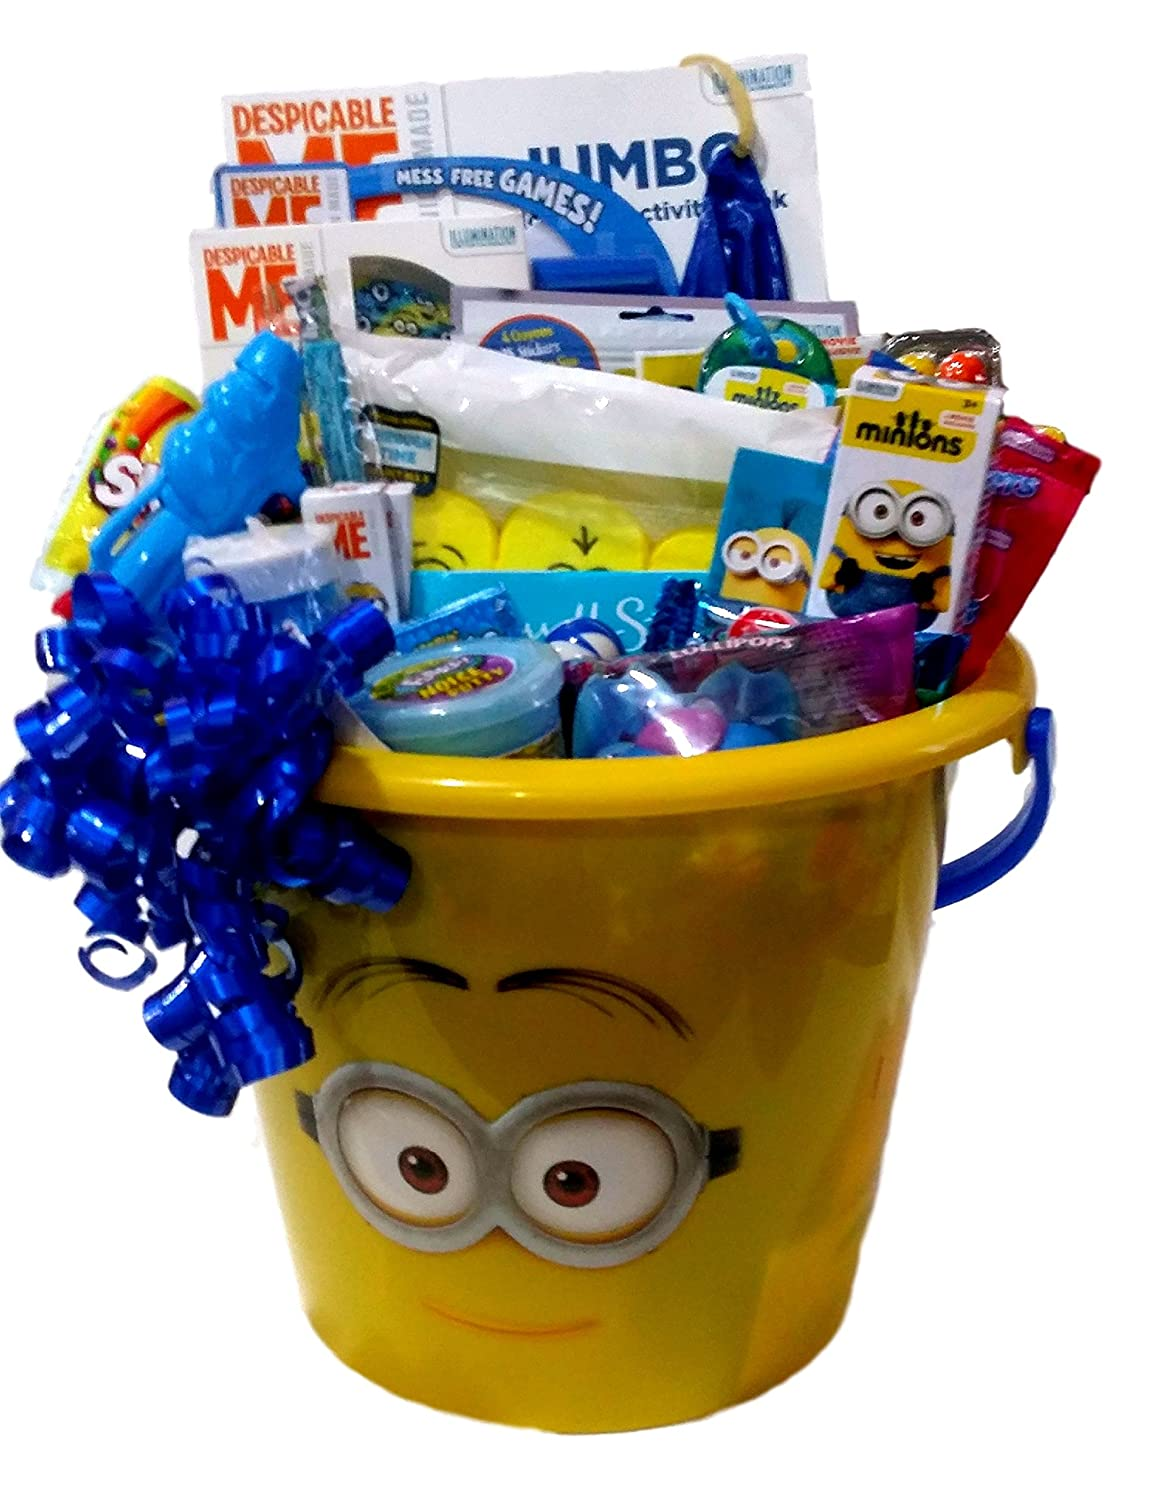 Despicable Me Minions Easter Basket: Gift Pail of Minion Activities & Candy An 11 inch tall Minion pail loaded with Minions Activites, Candy & novelties !